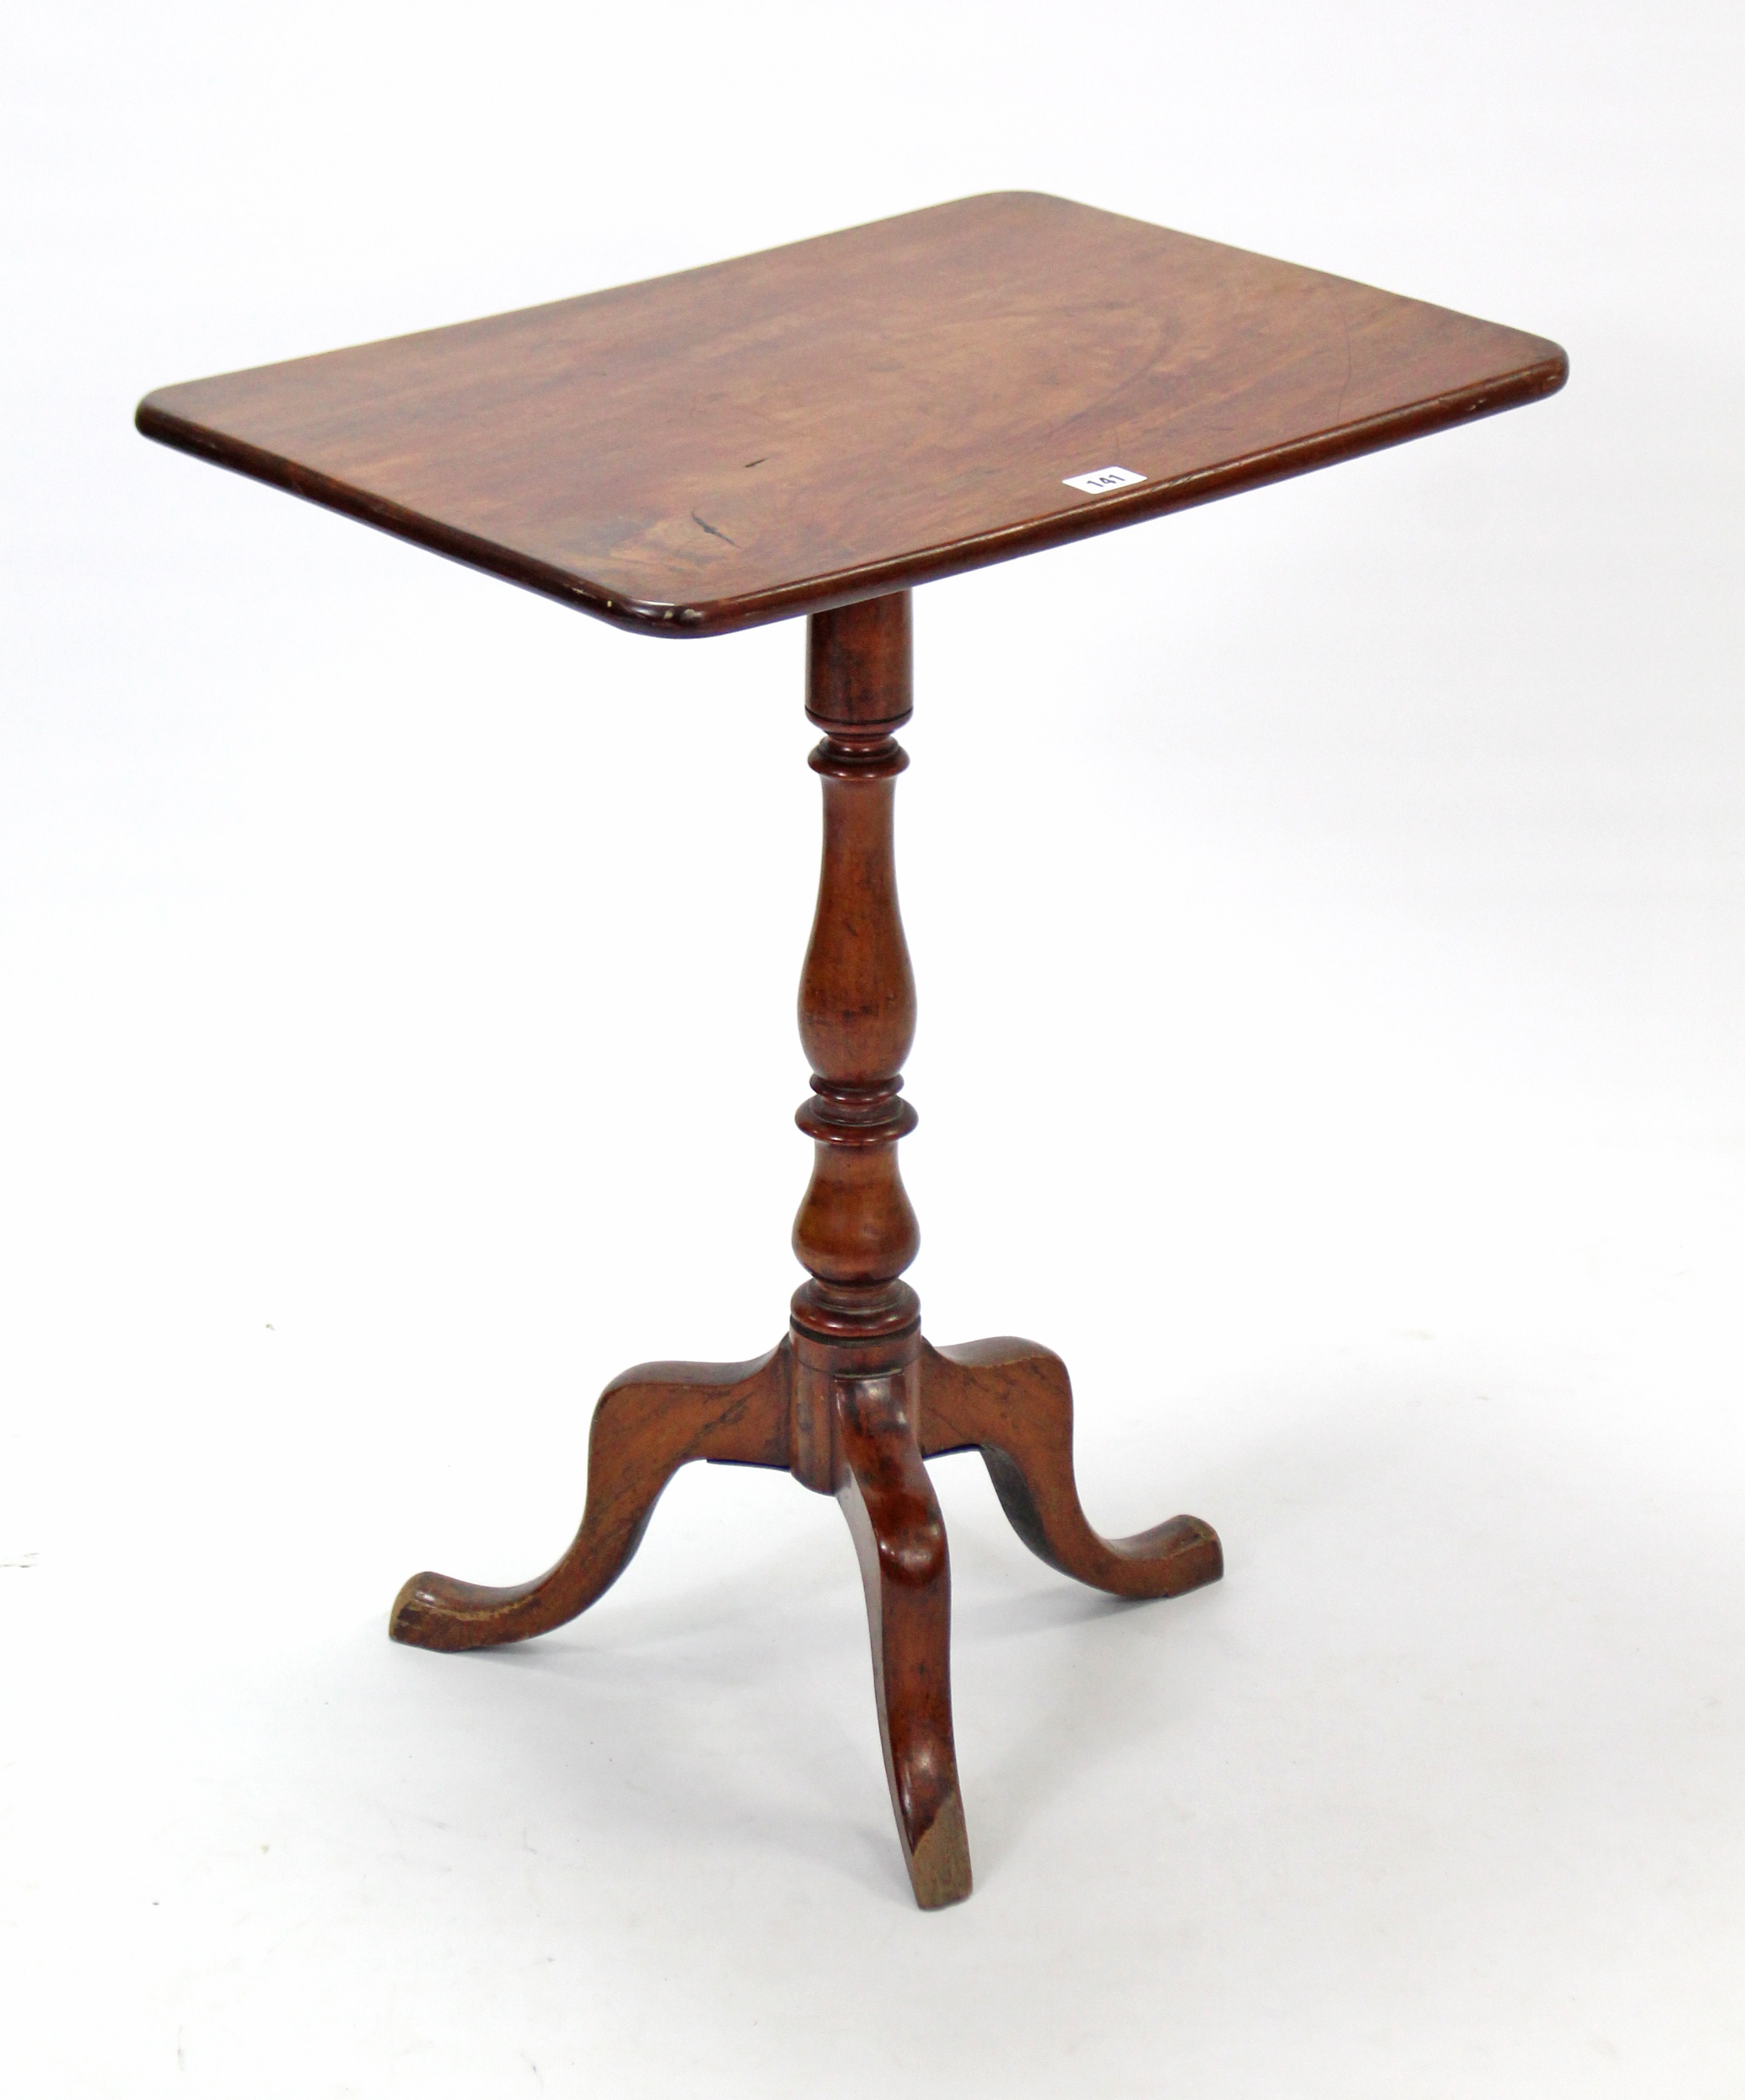 Lot 168 - A 19th century mahogany tripod table with rounded corners to the rectangular tilt-top, & on